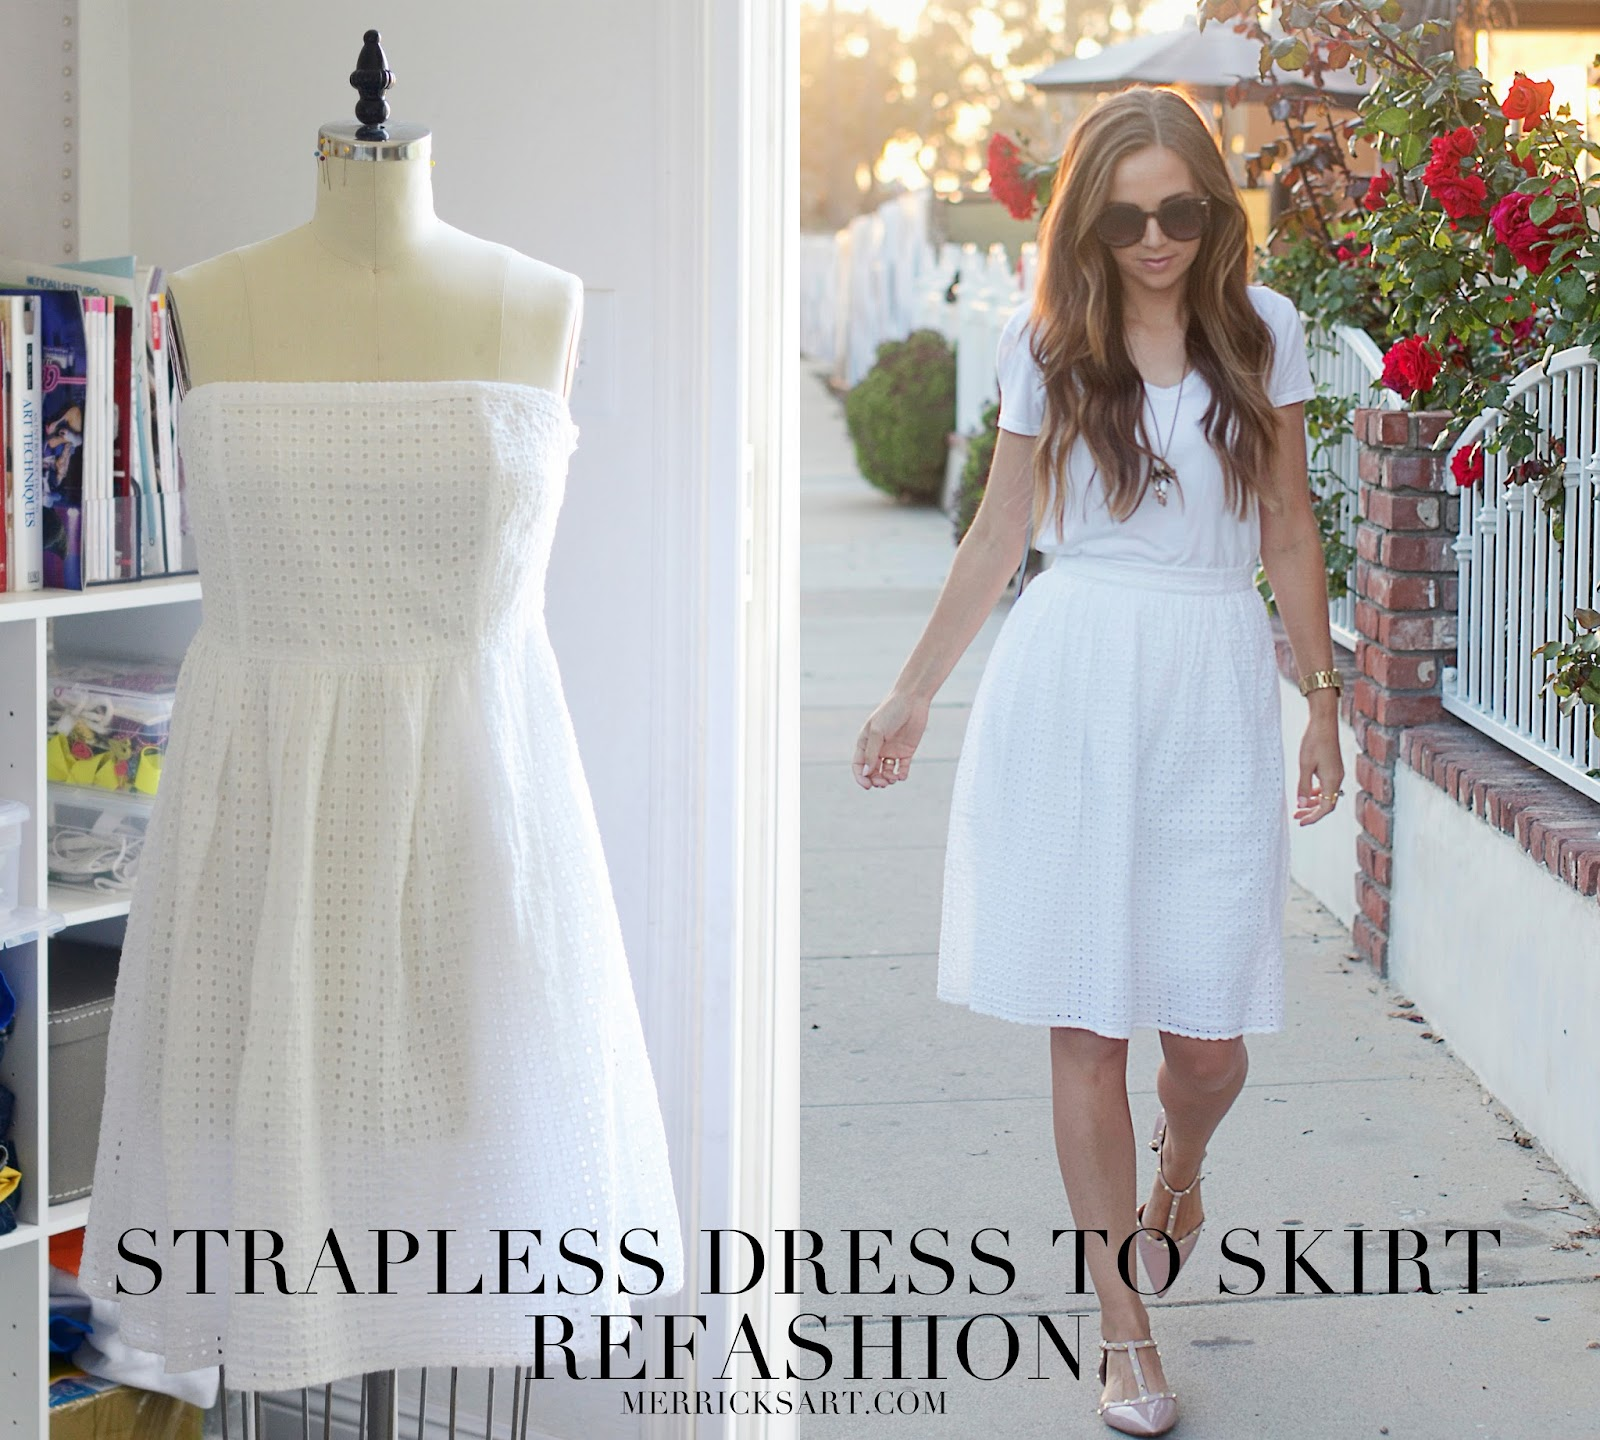 How To Make A Strapless Dress - Dress Xy